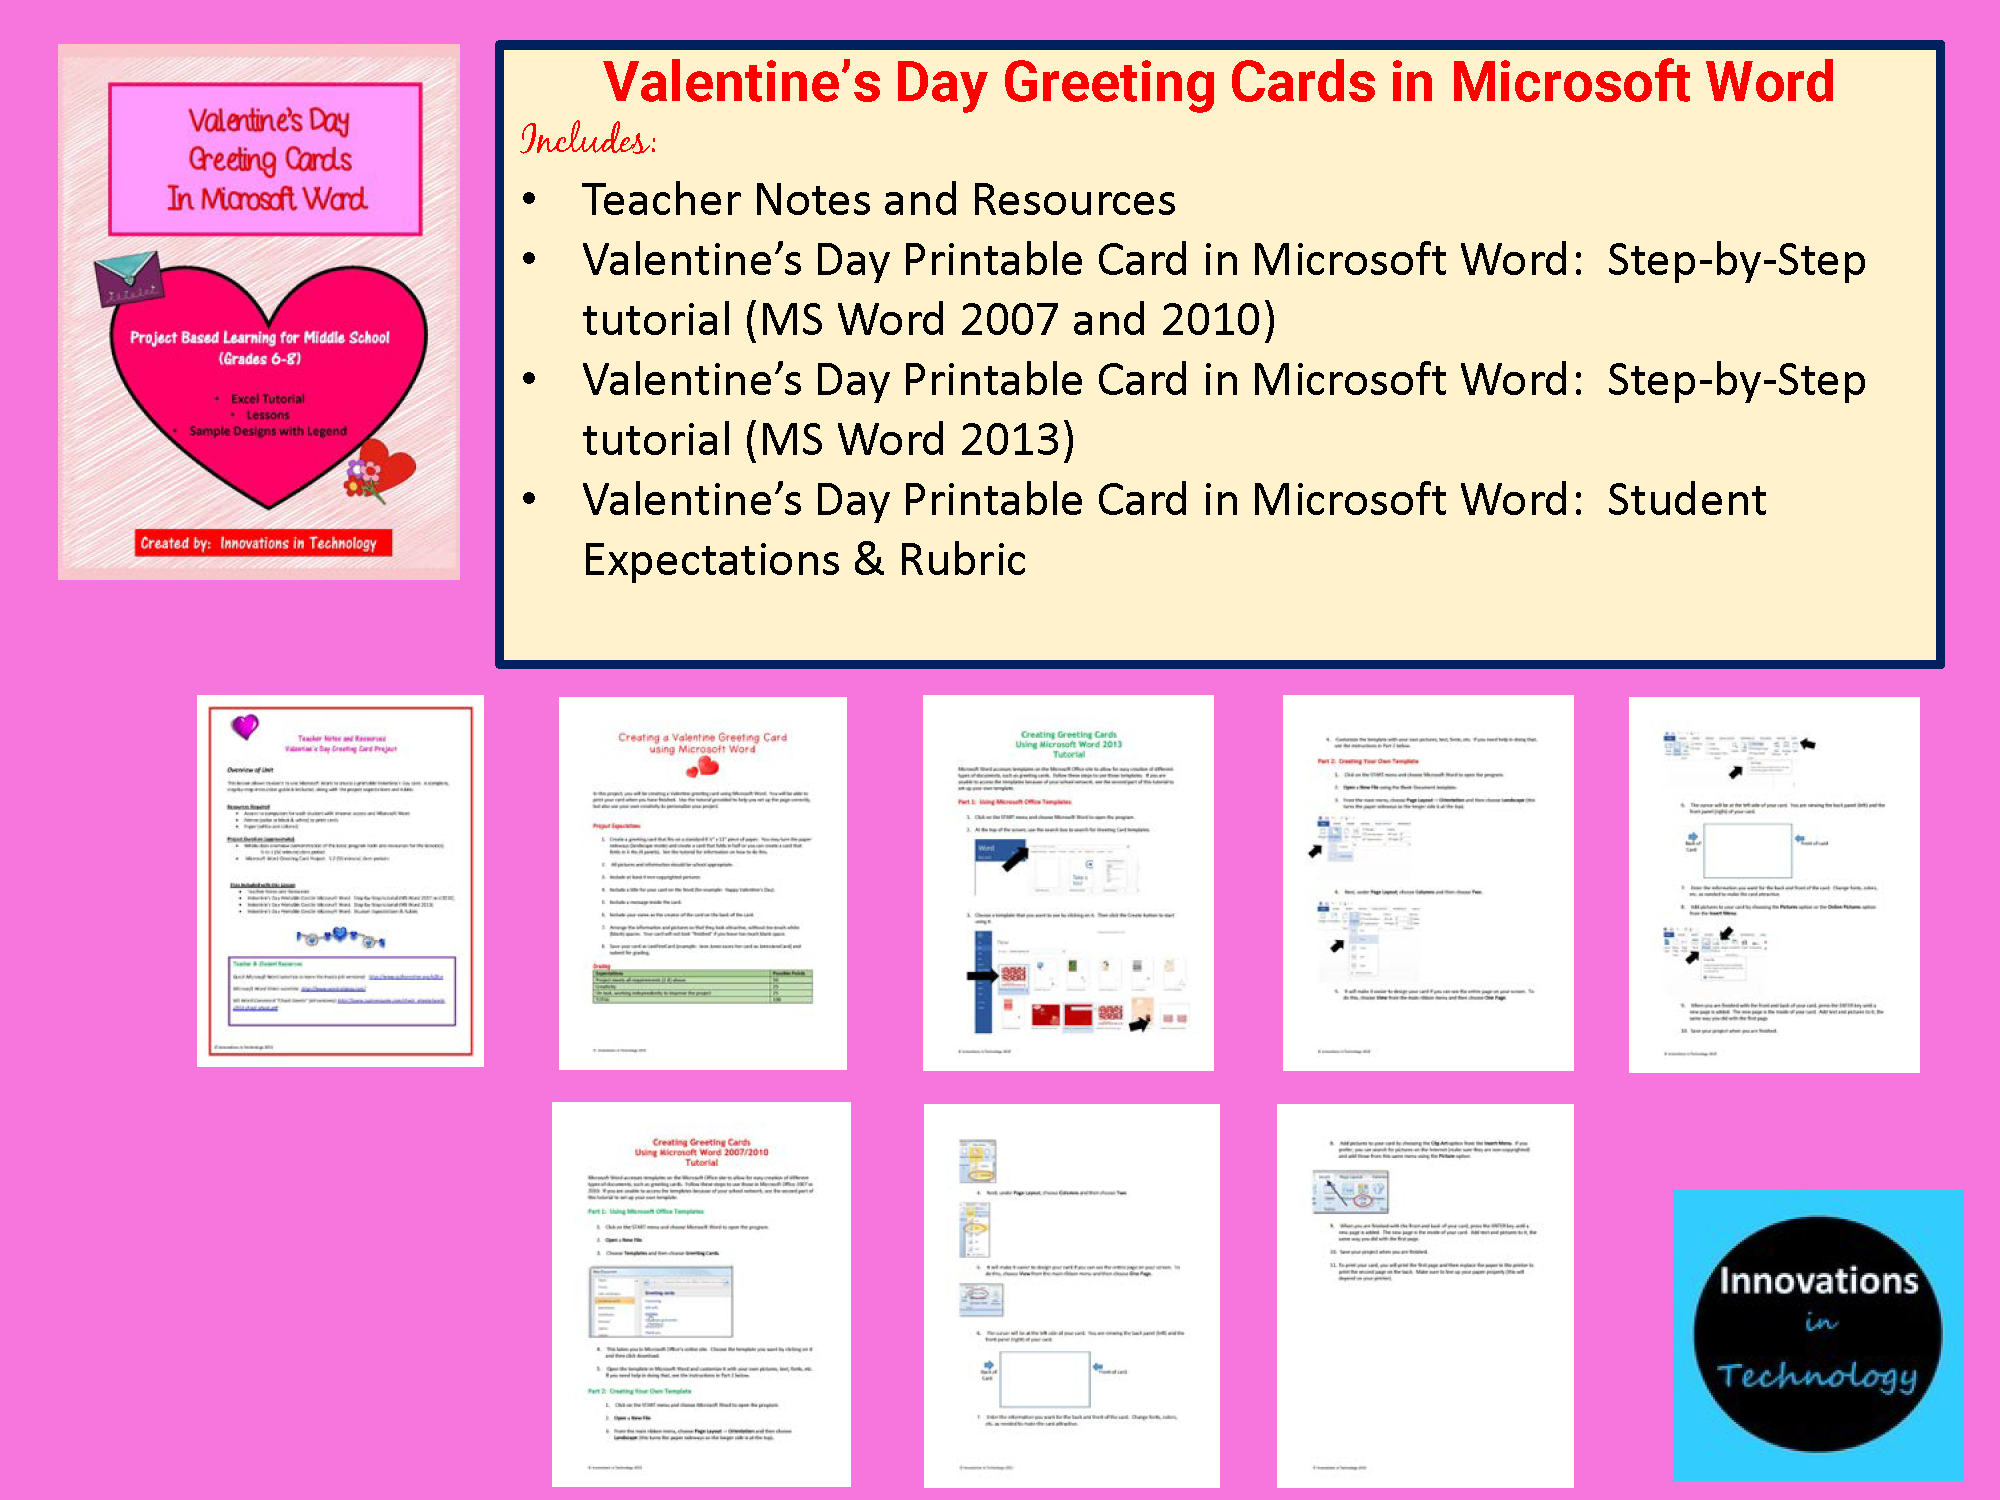 Valentines Day Cards Using Microsoft Word Innovations In Technology